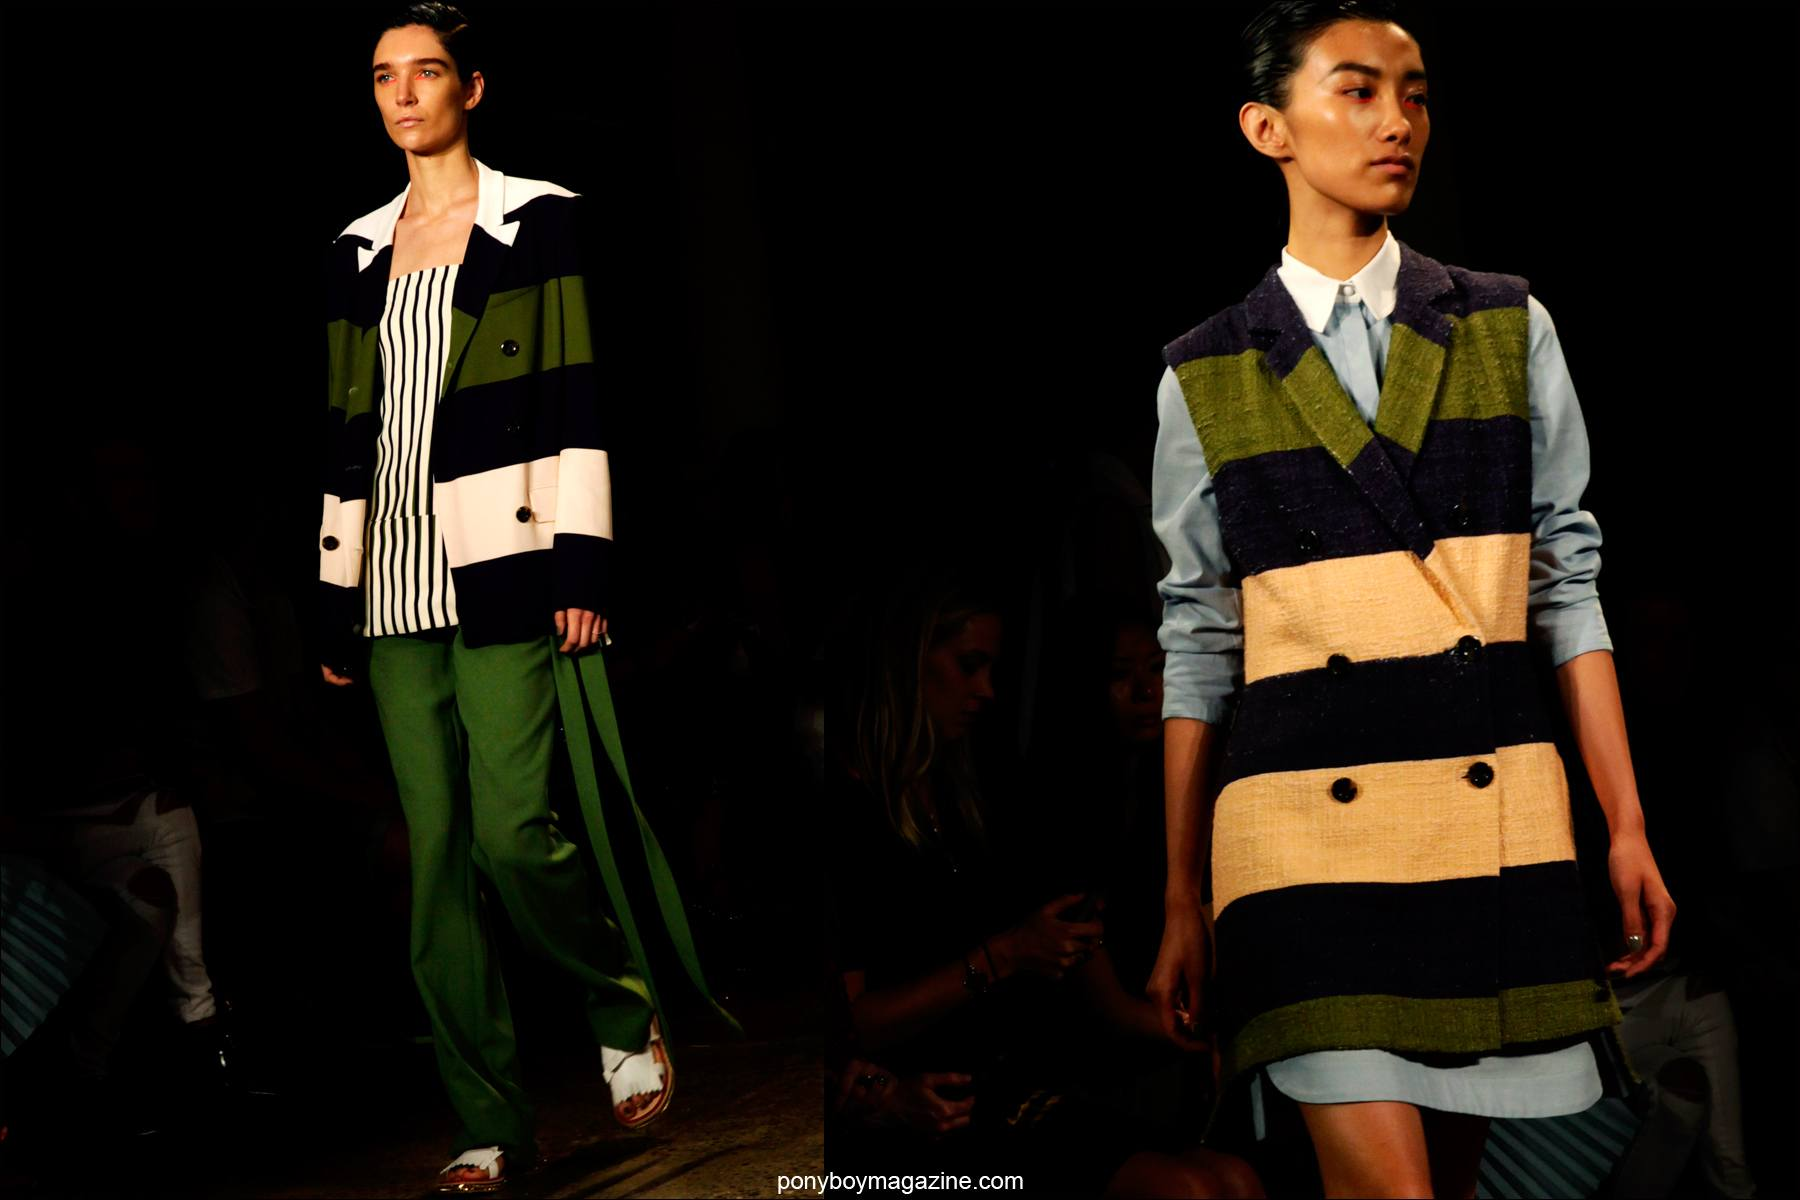 Striped clothing on models at the Peter Som S/S15 runway show at Milk Studios NY. Photographs by Alexander Thompson for Ponyboy Magazine.